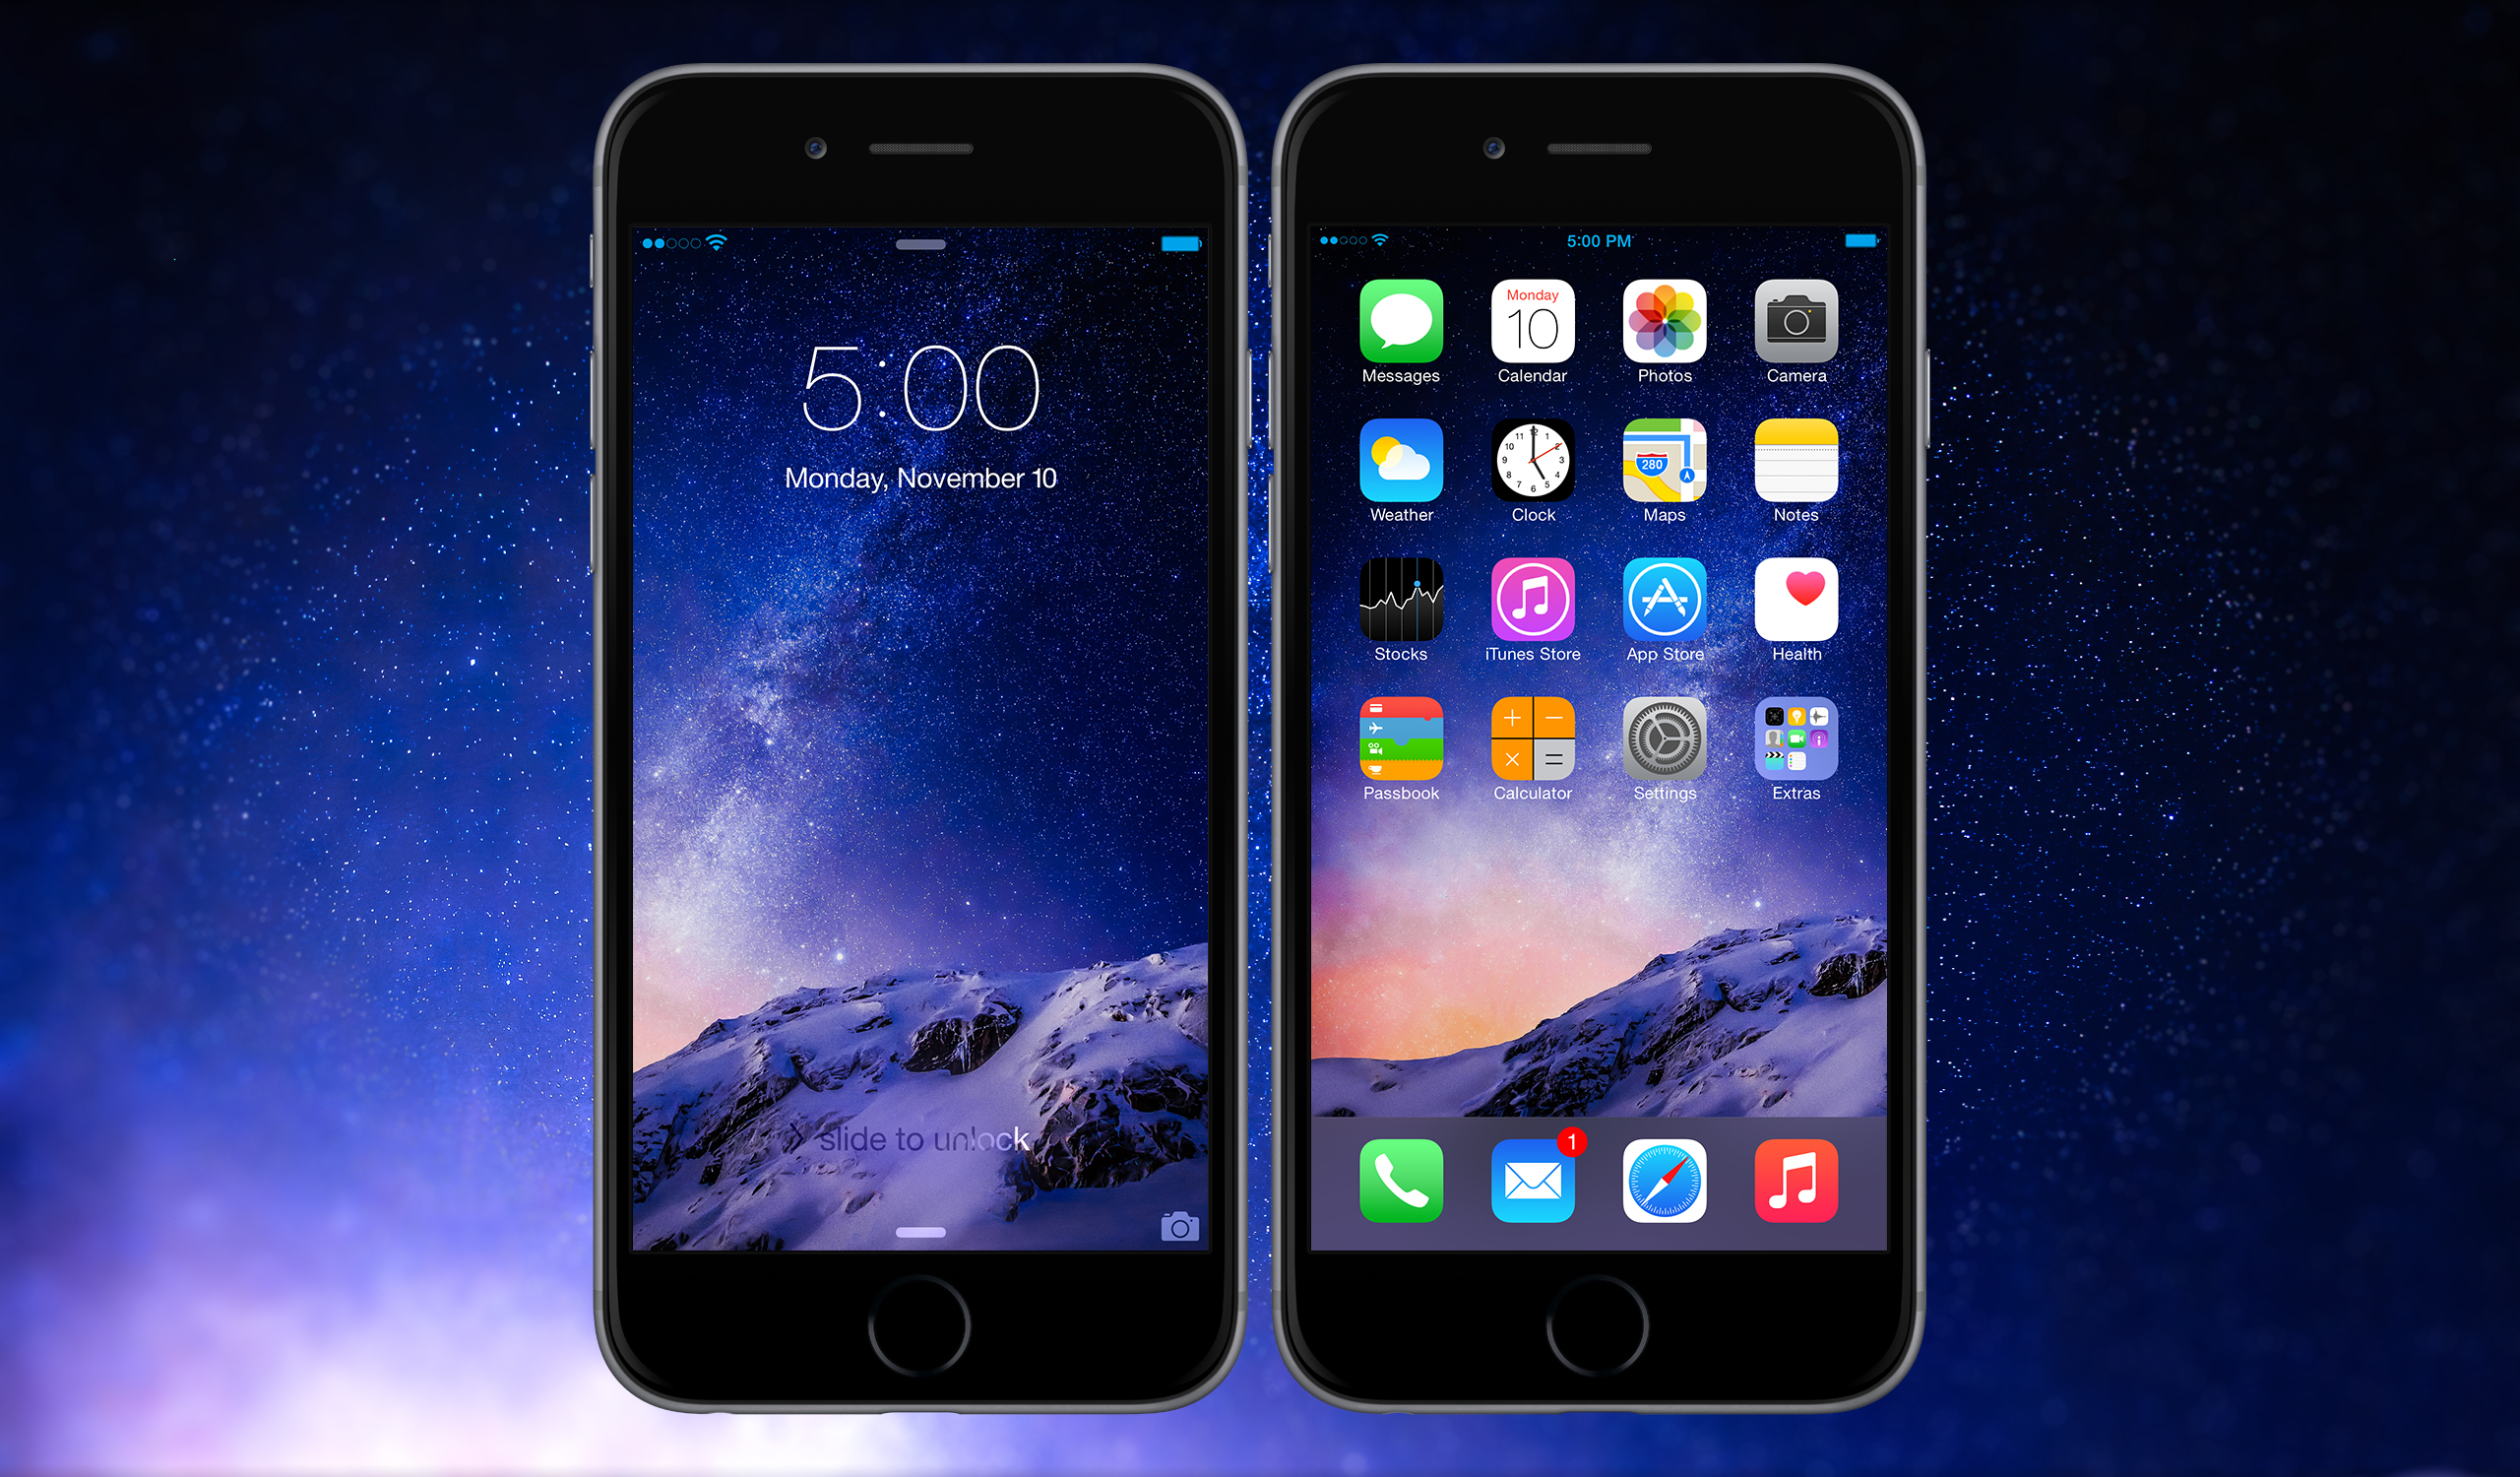 iPhone 6 Plus SS November 2014 by AaronOlive